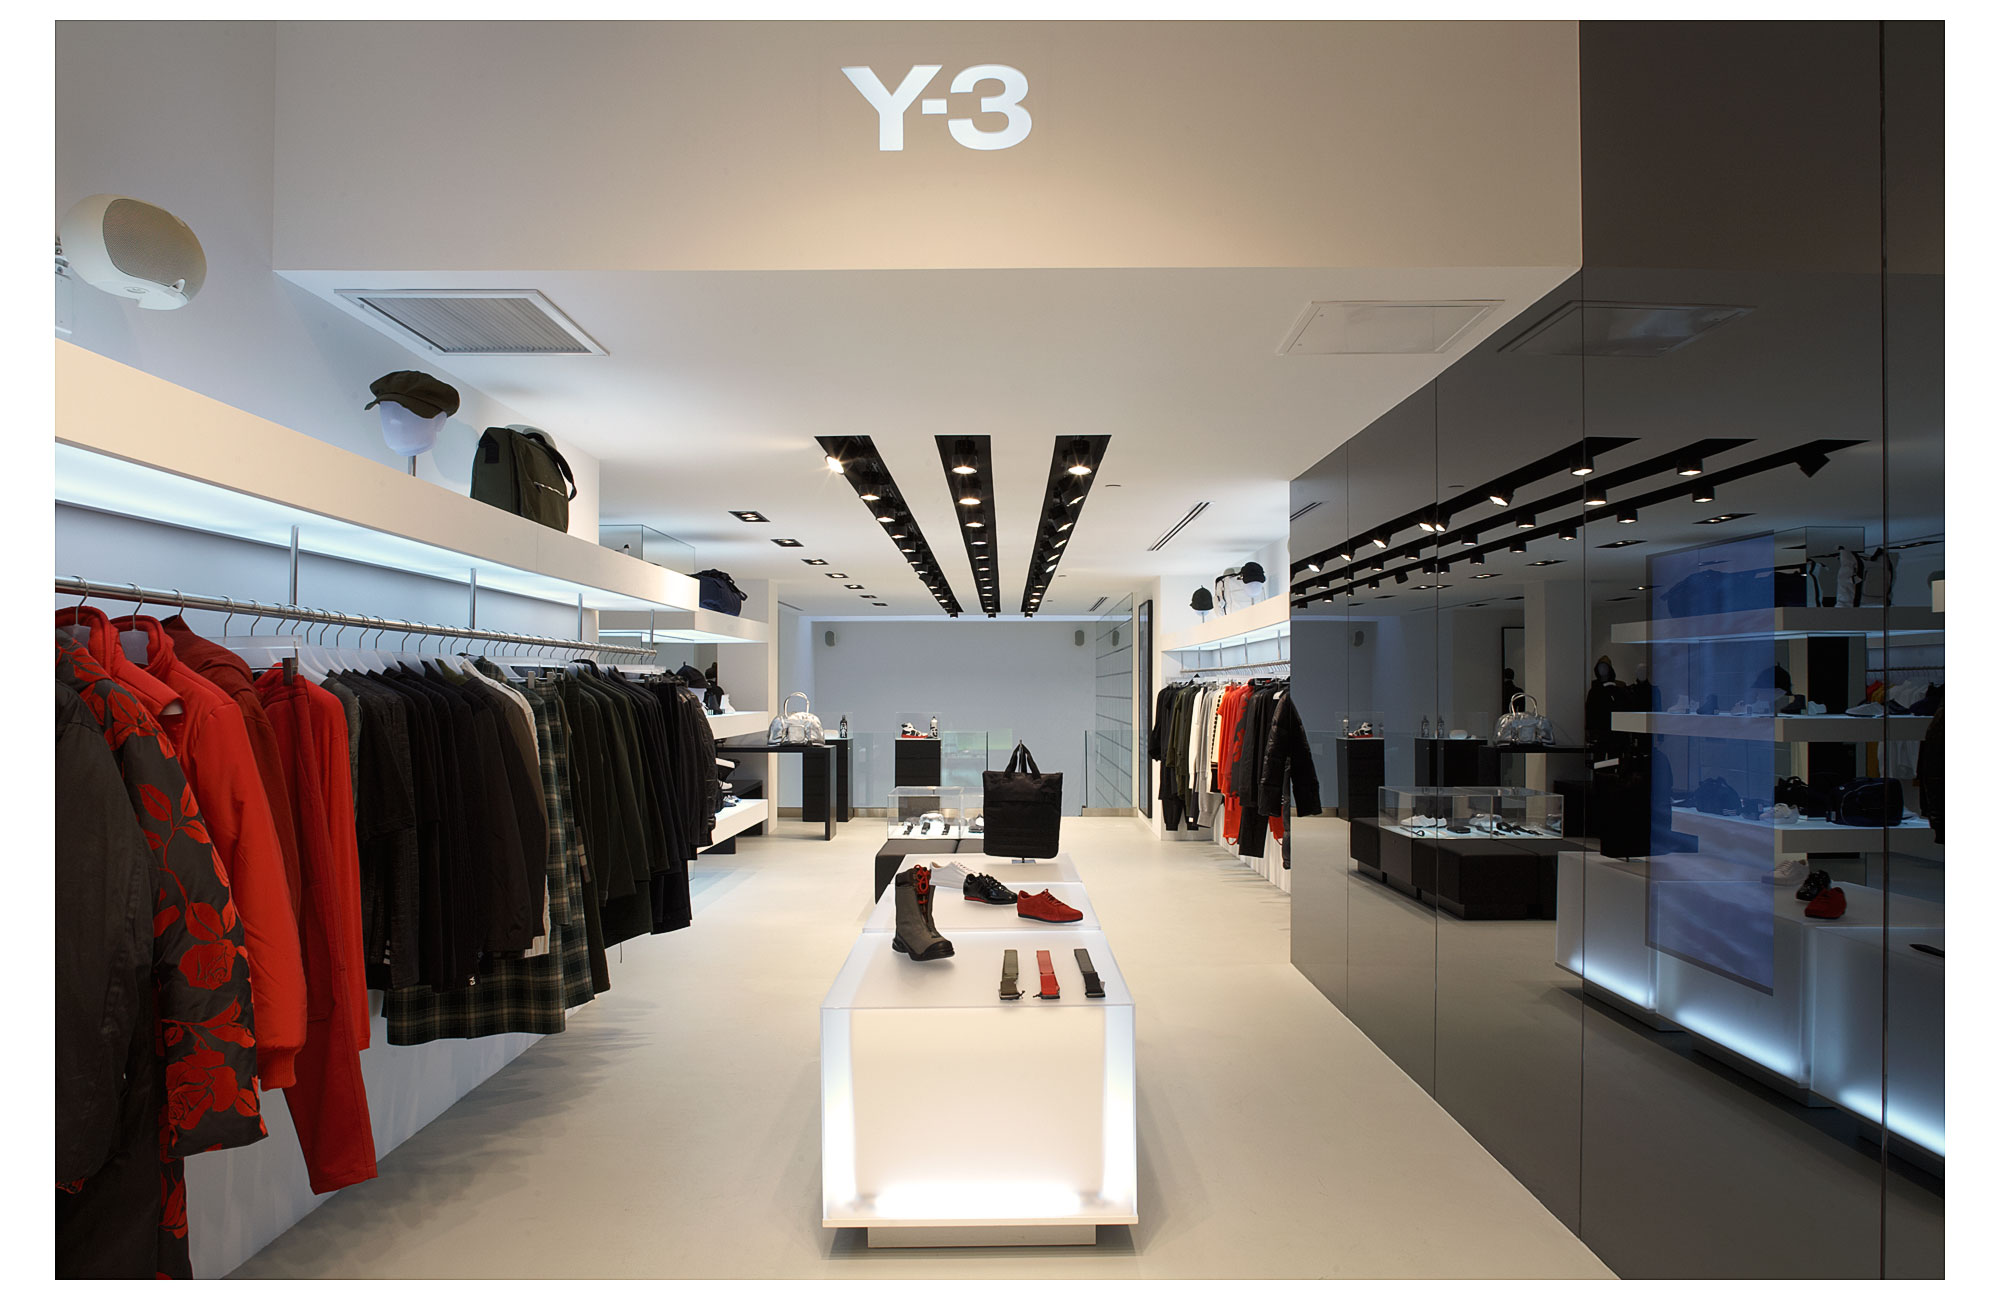 Interior | Adidas Y3 | Brian Park Photo New York | 2